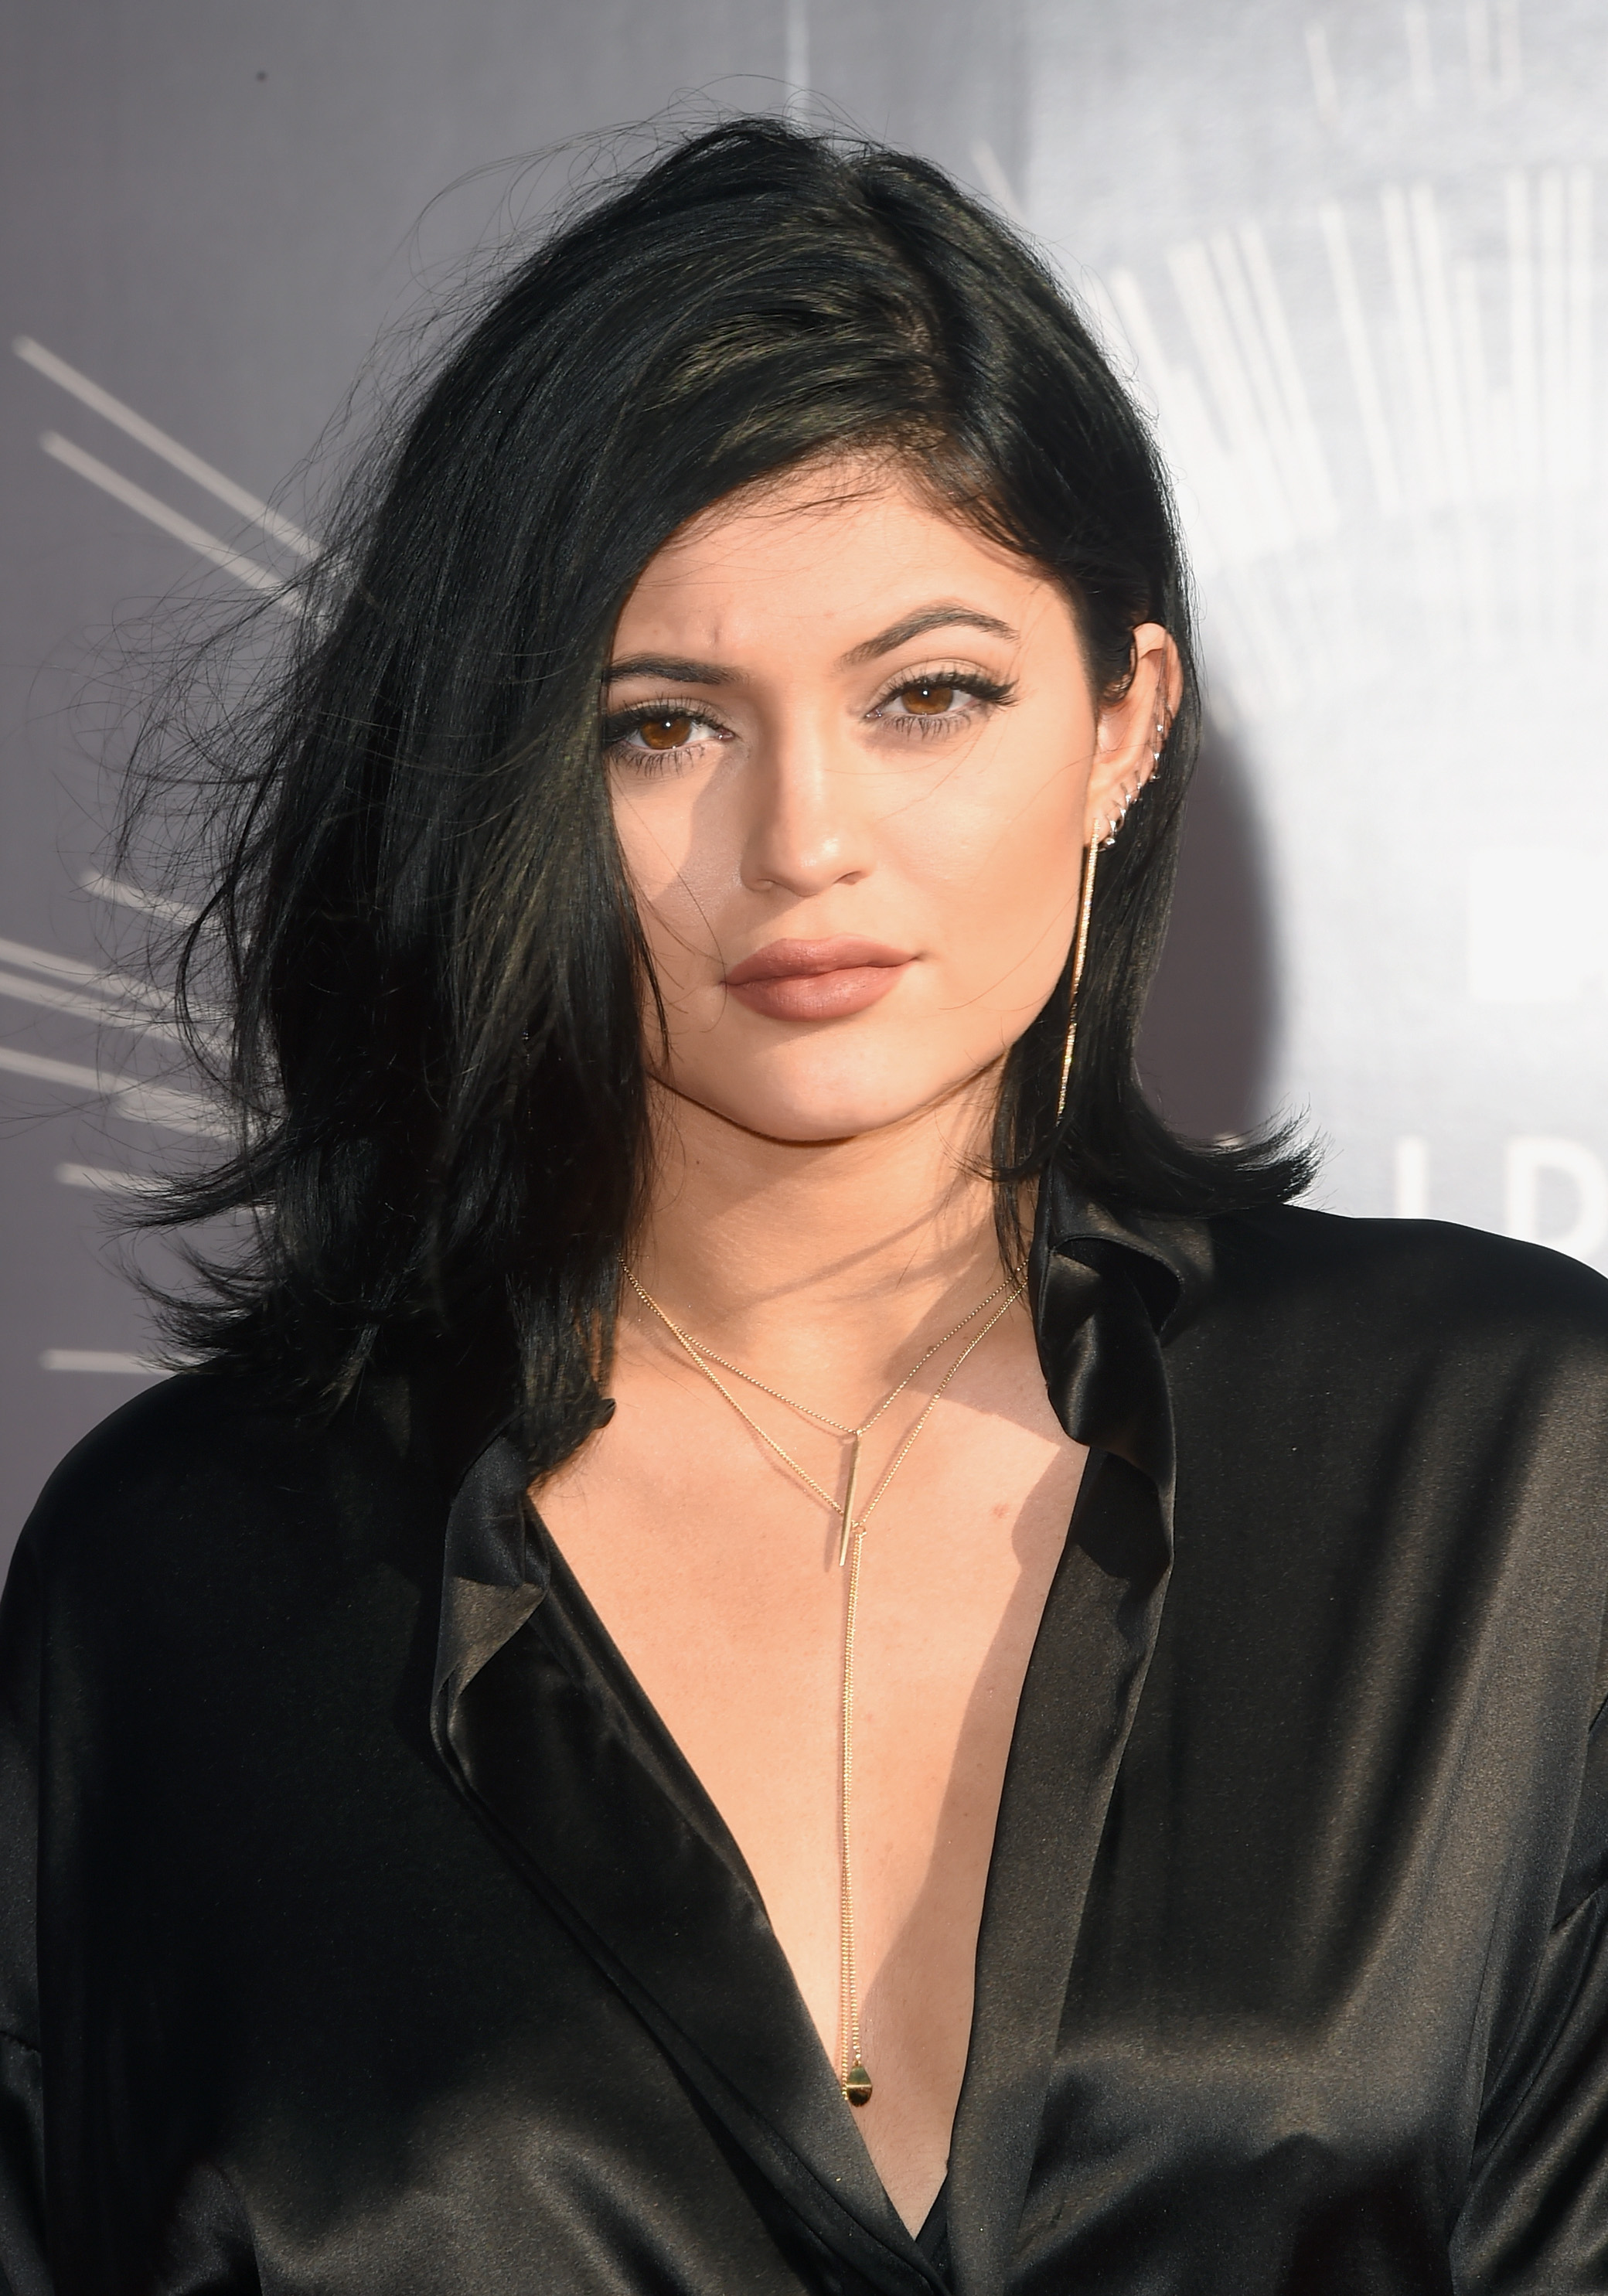 12 Kylie Jenner Outfits For Less That Prove Her High End Style Is